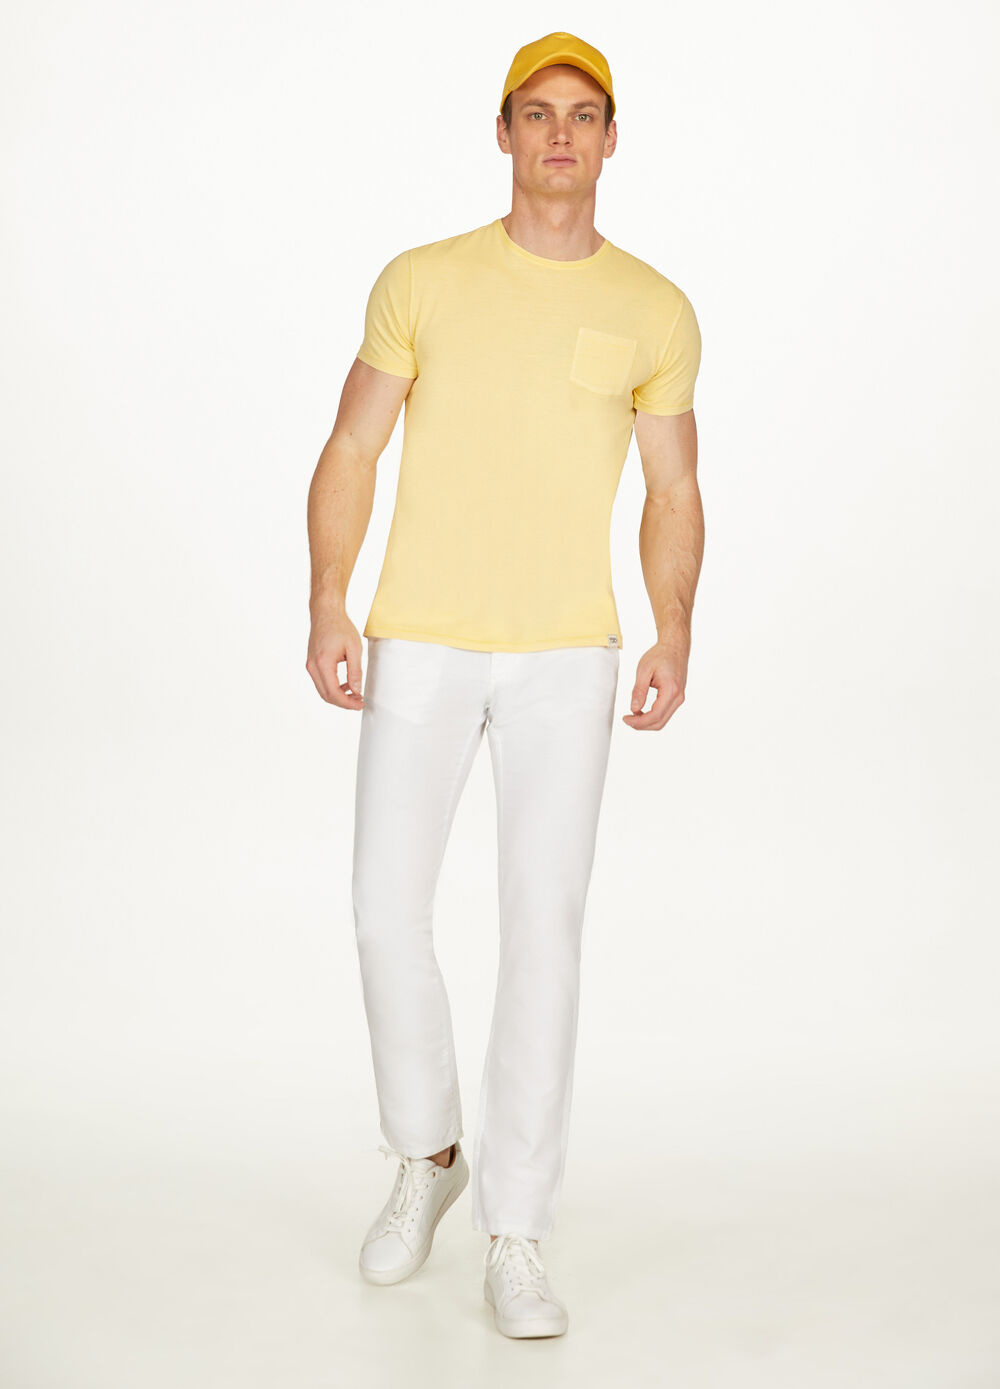 Solid colour 100% cotton T-shirt with pocket